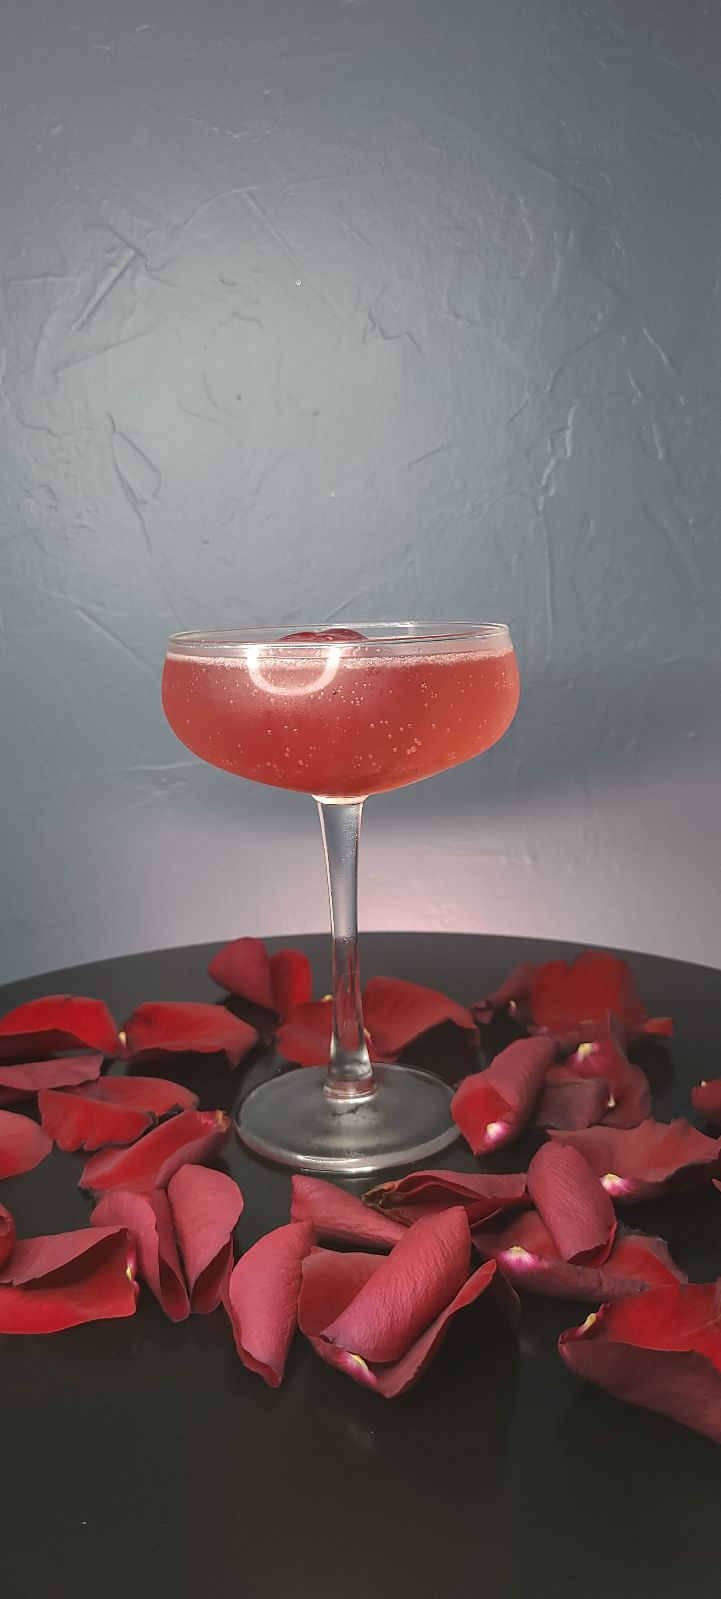 The Rejected Proposal drink sits on black table in front of dark blue wall. Rose pedals surround the base of the drink. The drink is red and in a coupe glass.